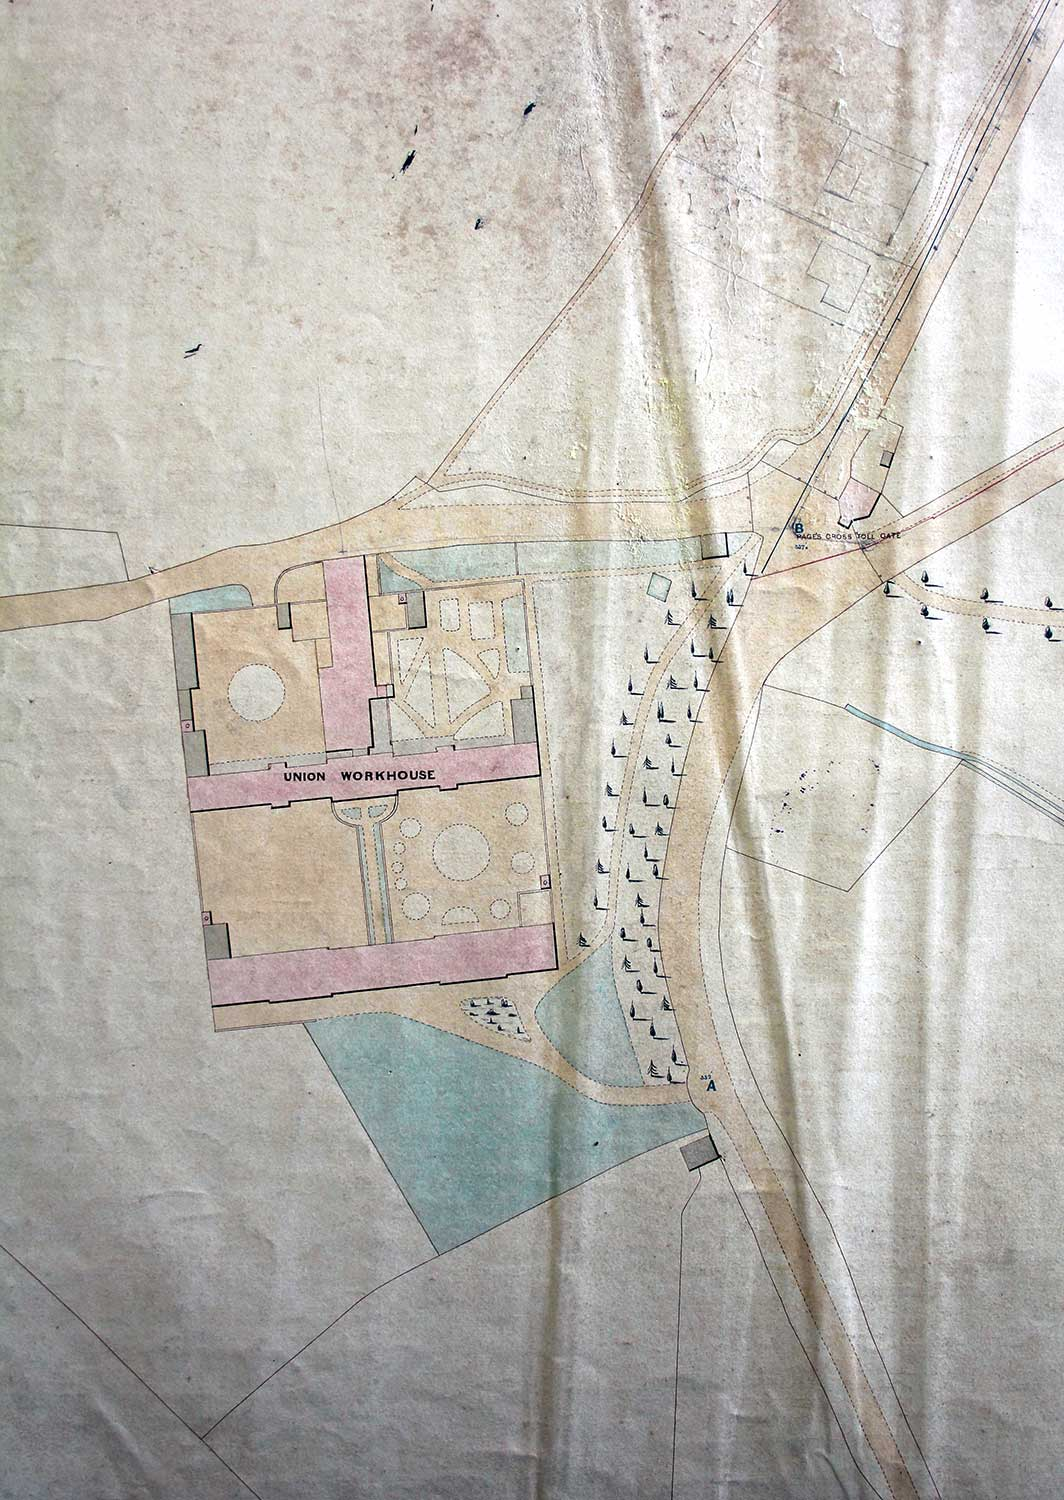 workhouse-map-from-1853